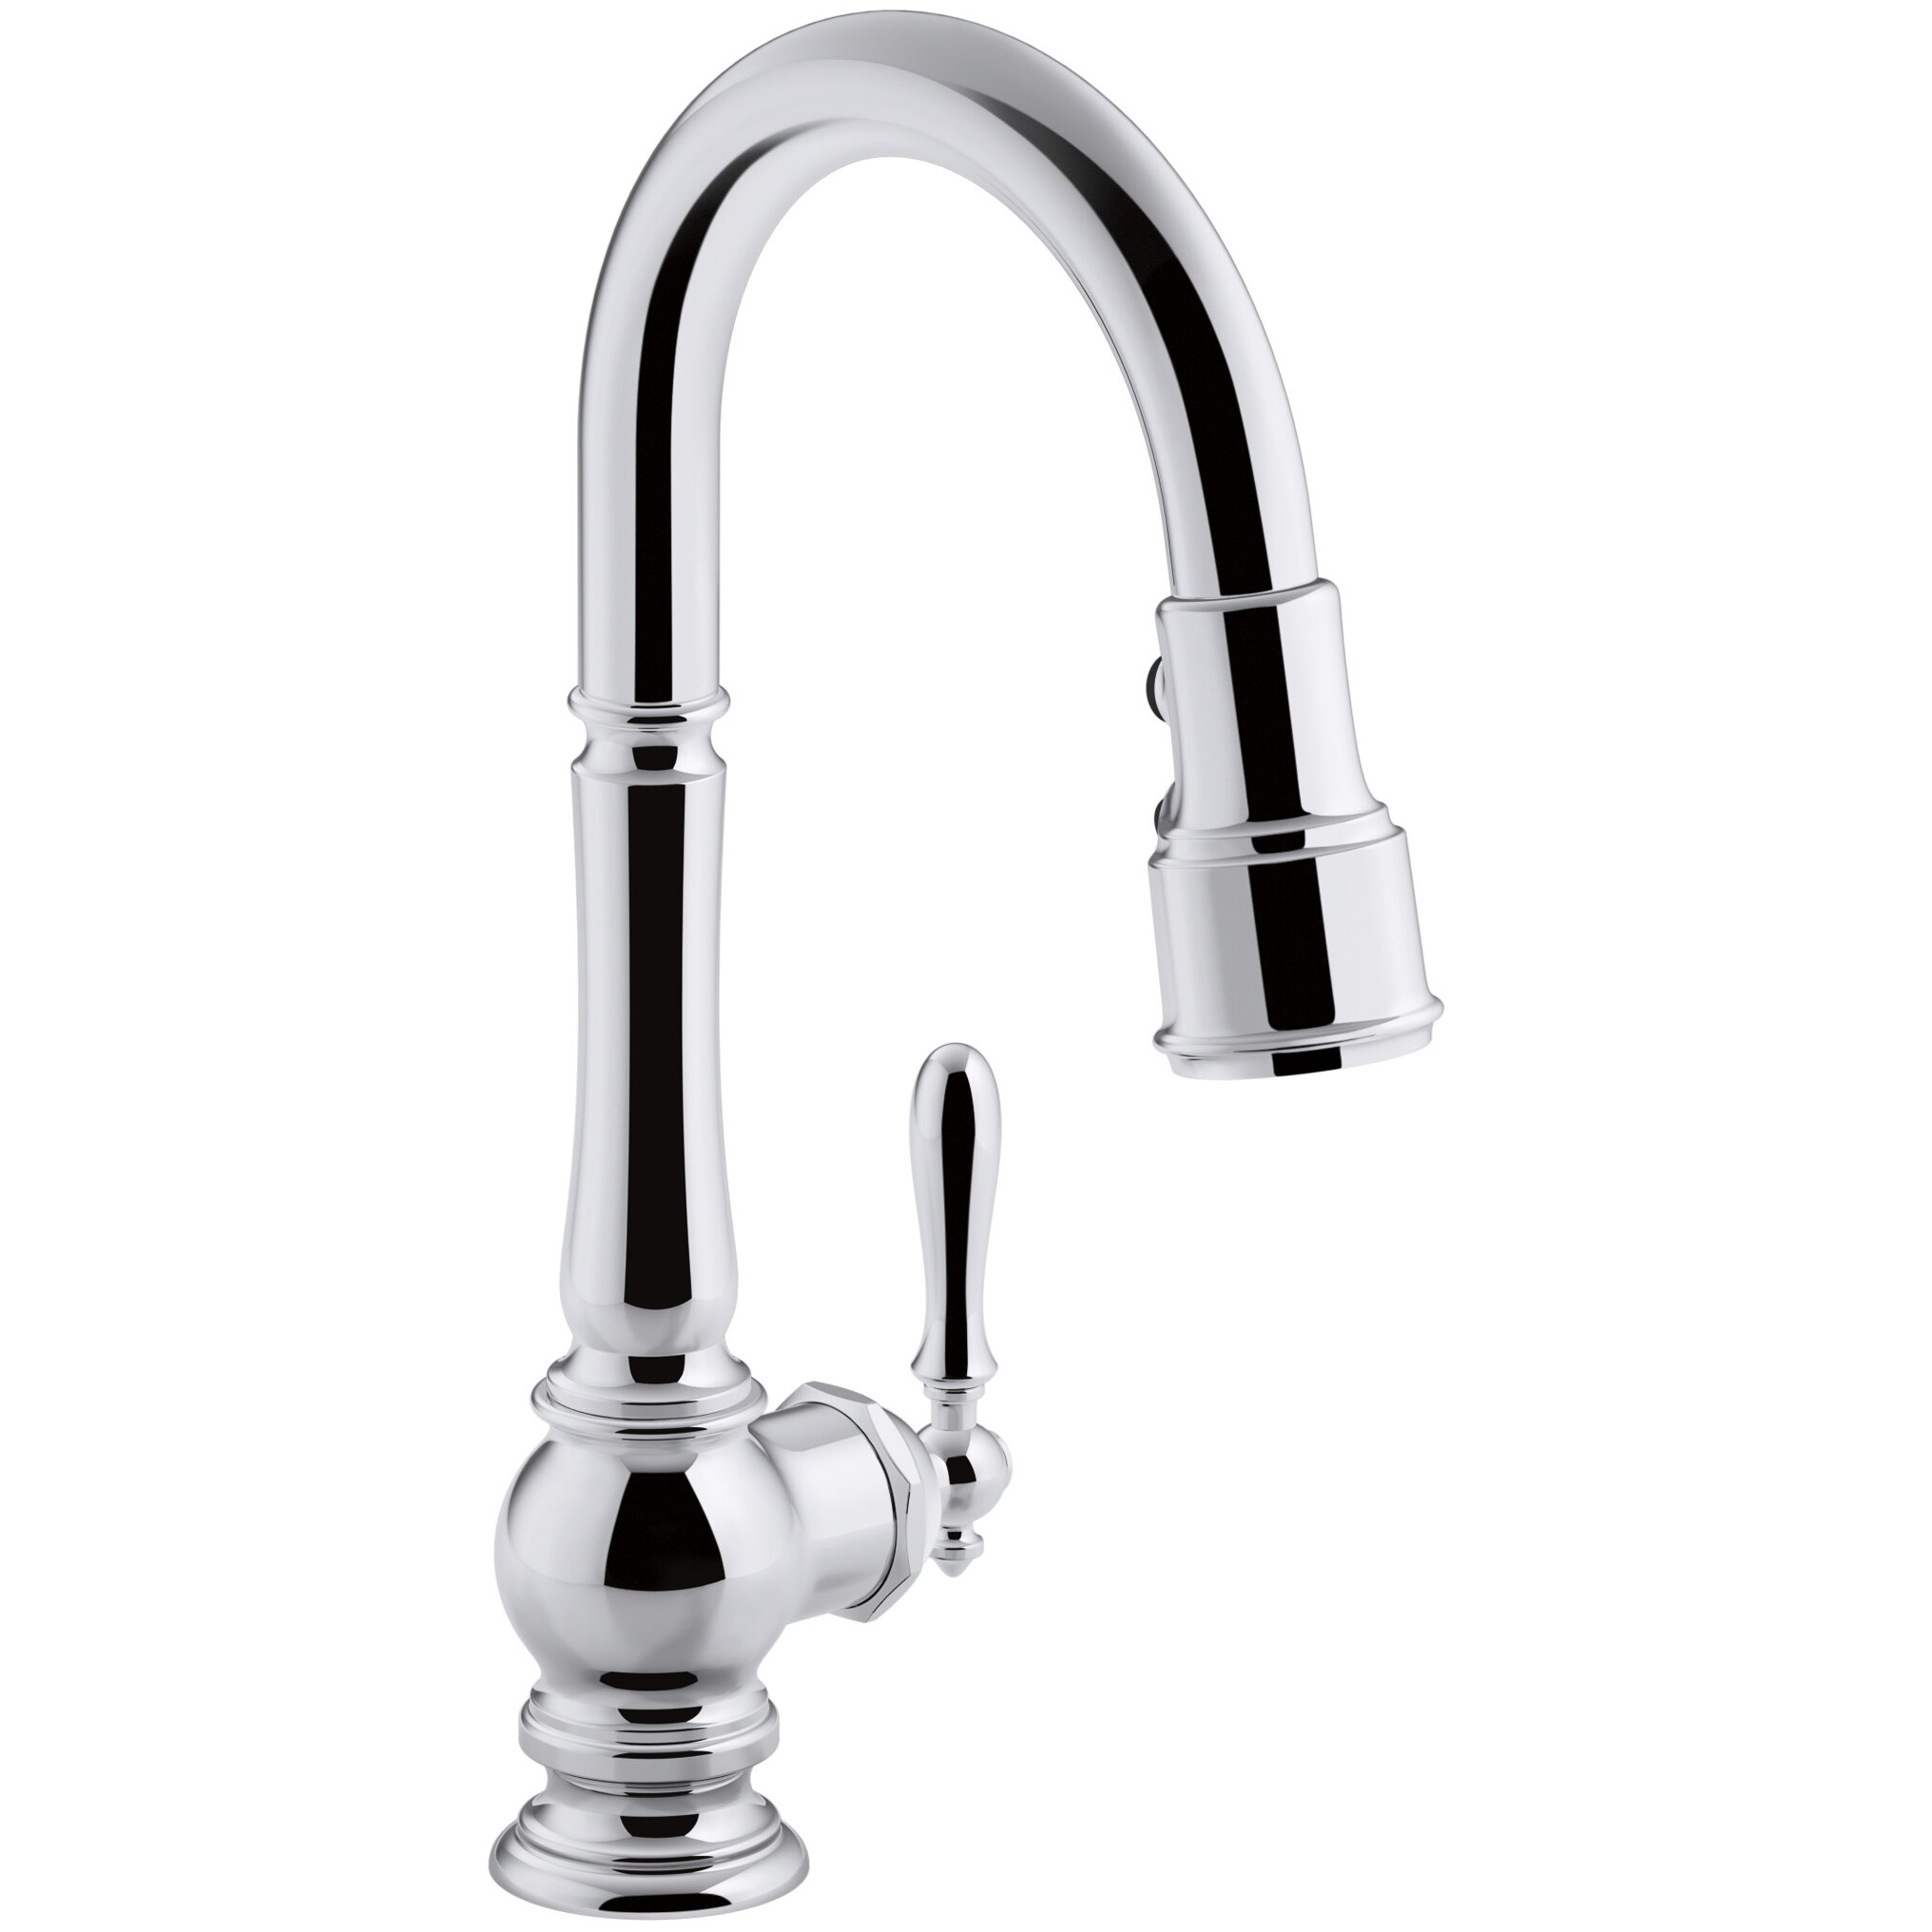 Kohler Artifacts Single-Hole Kitchen Sink Faucet with Pull-Down Spout ...